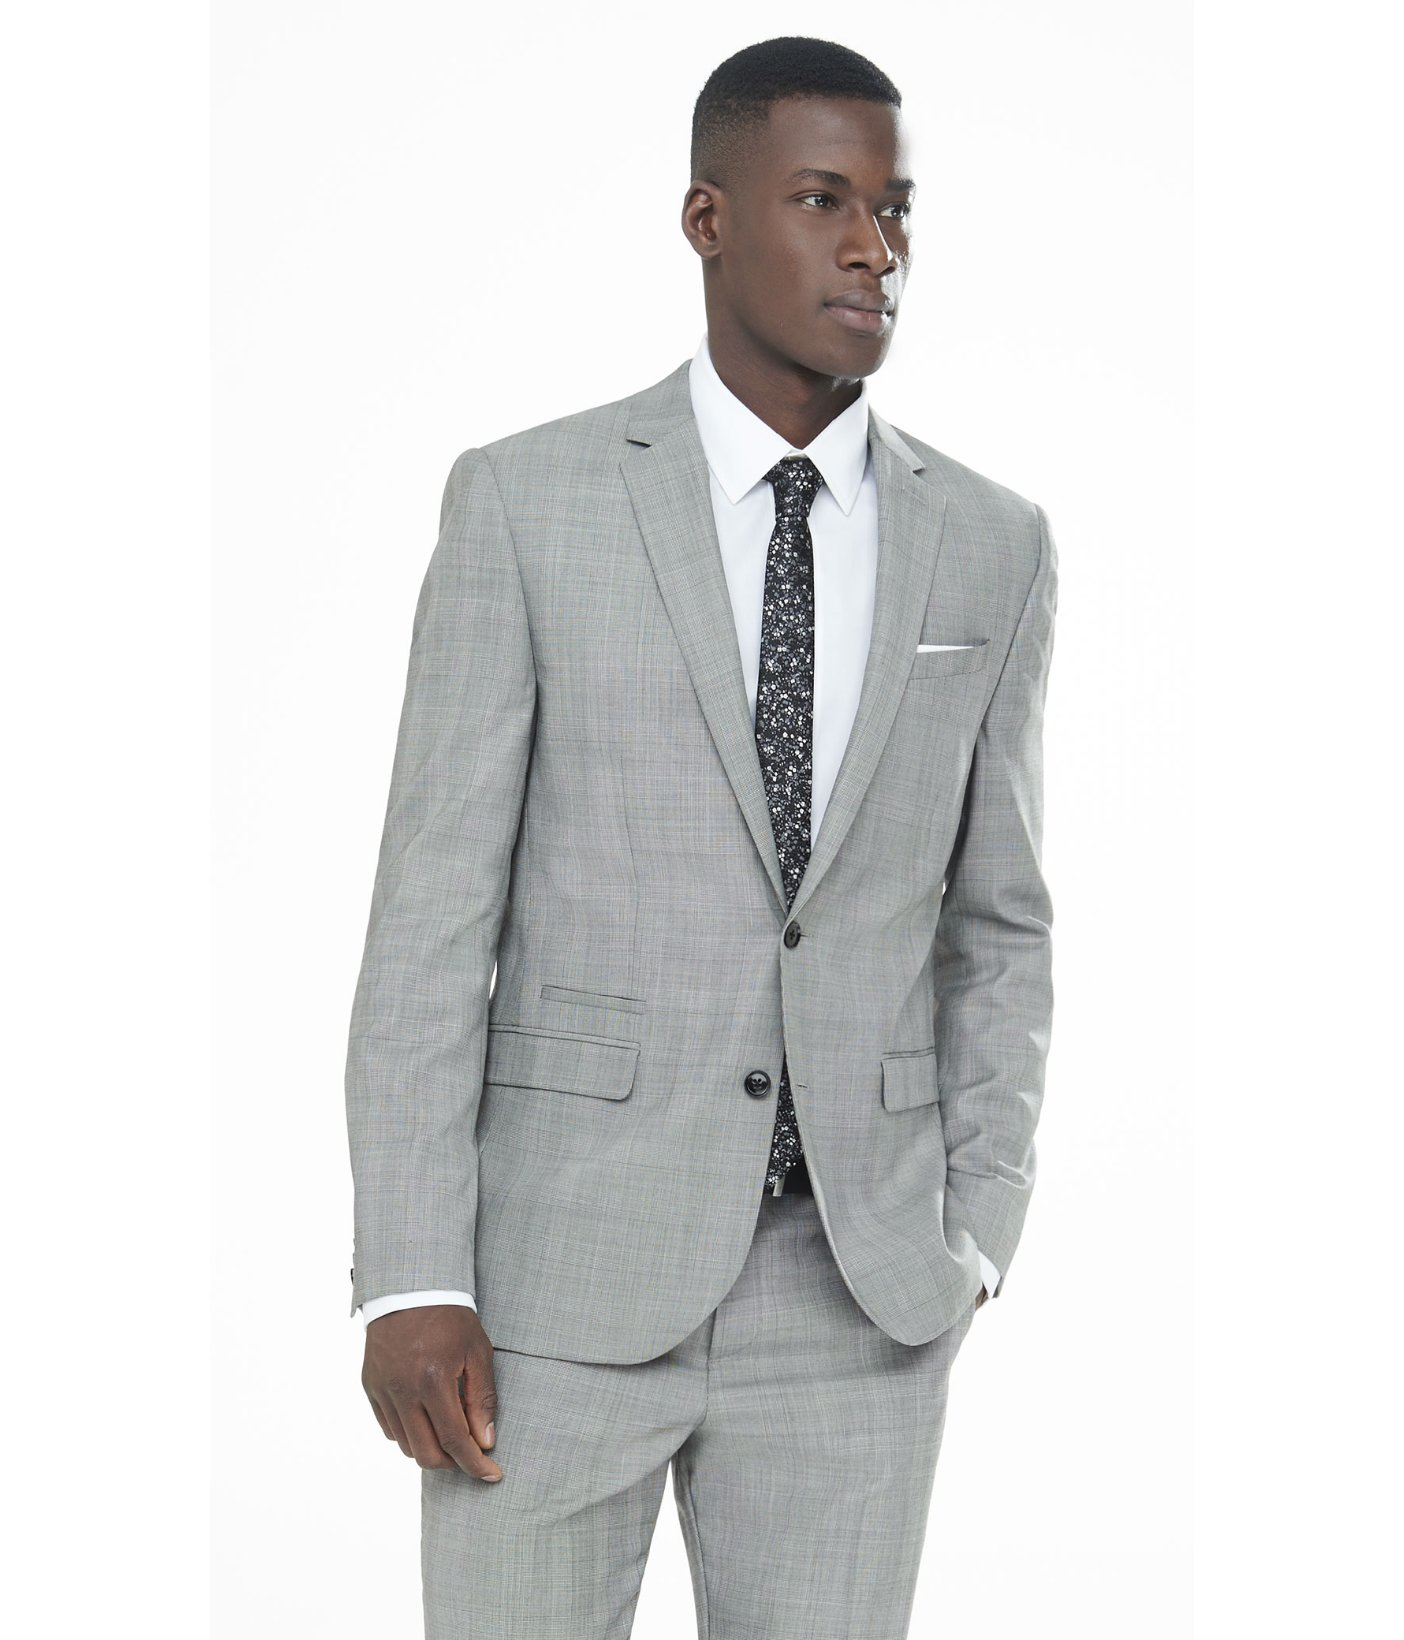 Lyst - Express Light Gray Glen Plaid Photographer Suit Jacket in ...